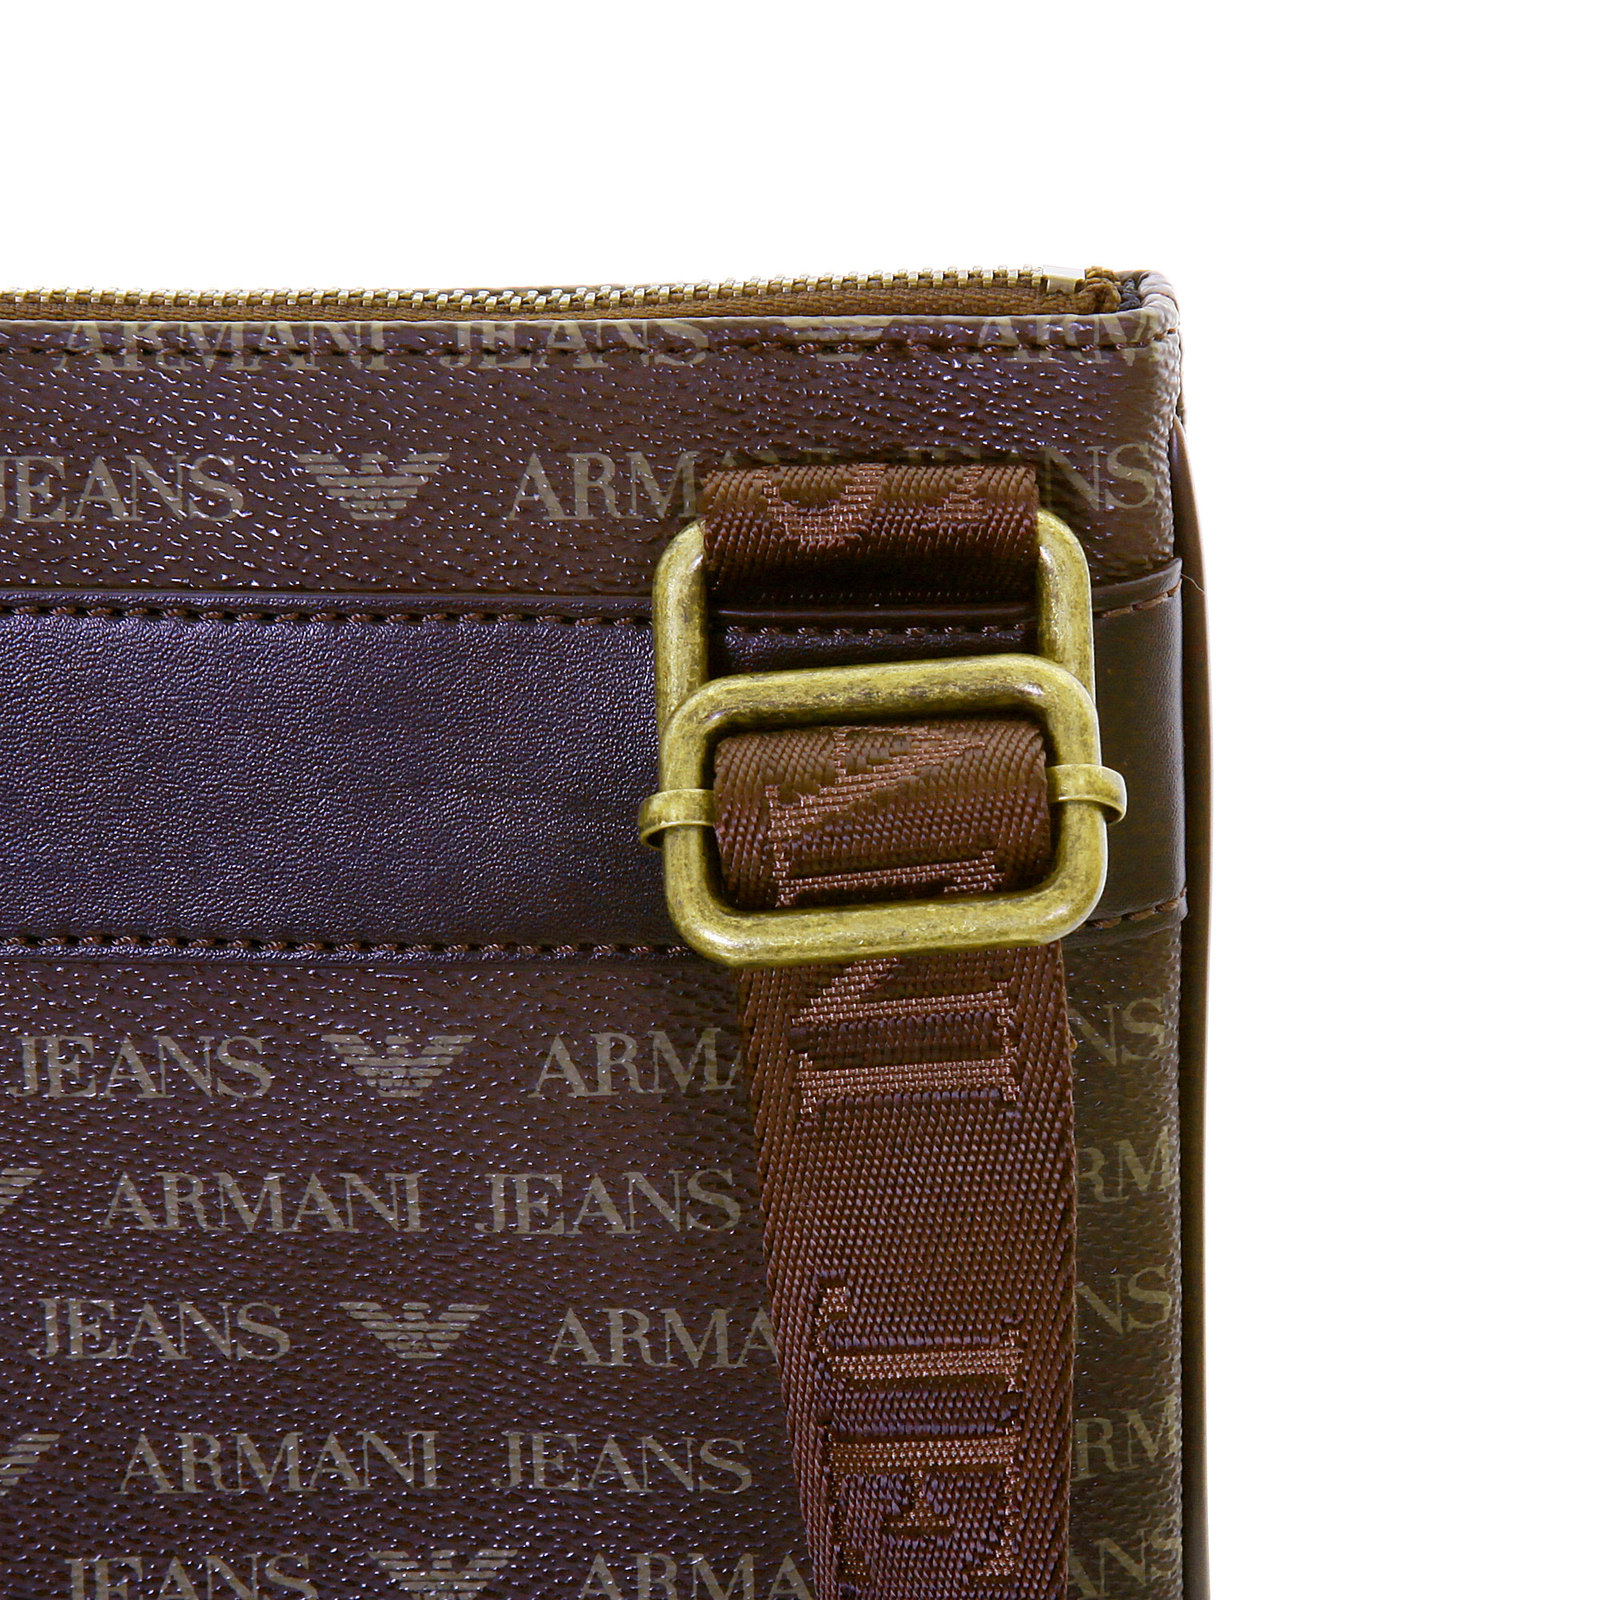 Armani Jeans mens brown logo small messenger bag AJM2472 at Togged ... 95a964bc6a739